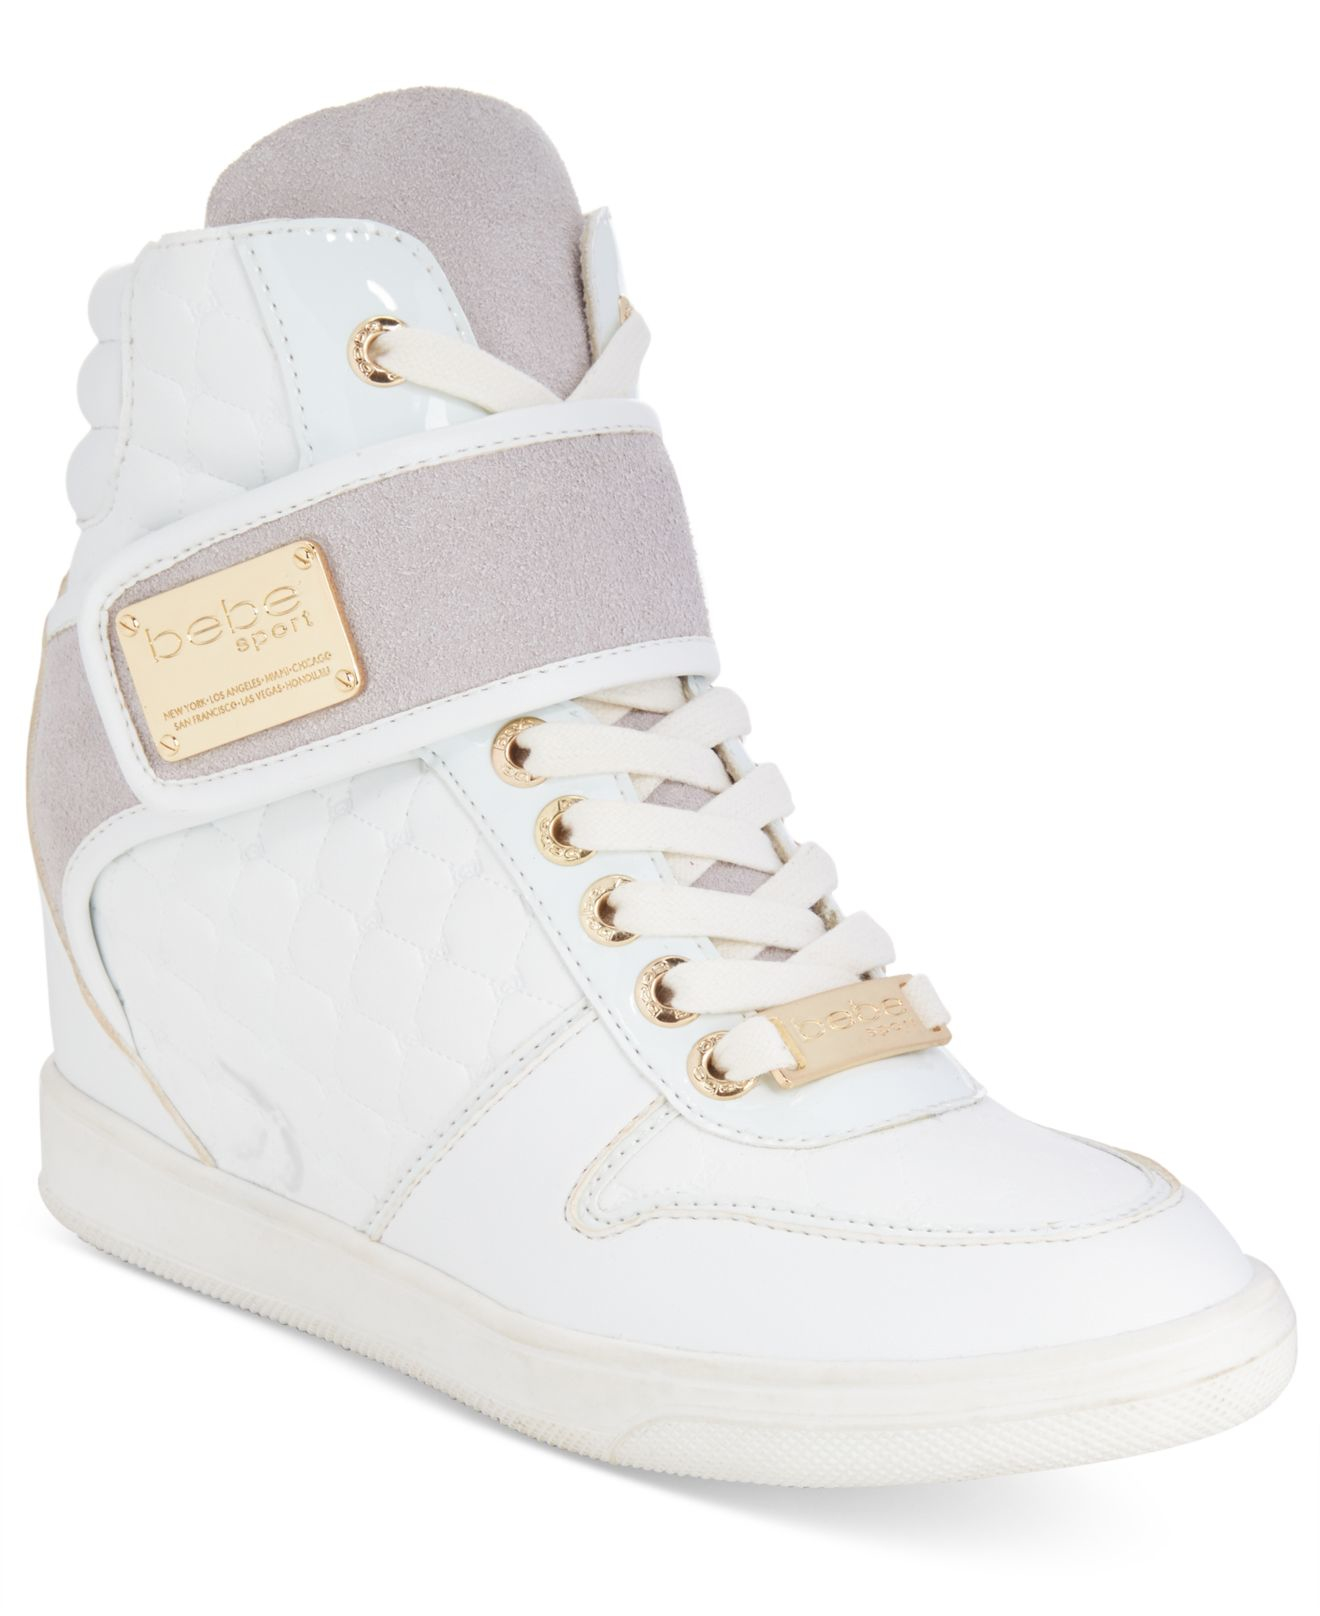 c1e8ce85ed9 Lyst - Bebe Sport Colby Wedge Sneakers in White